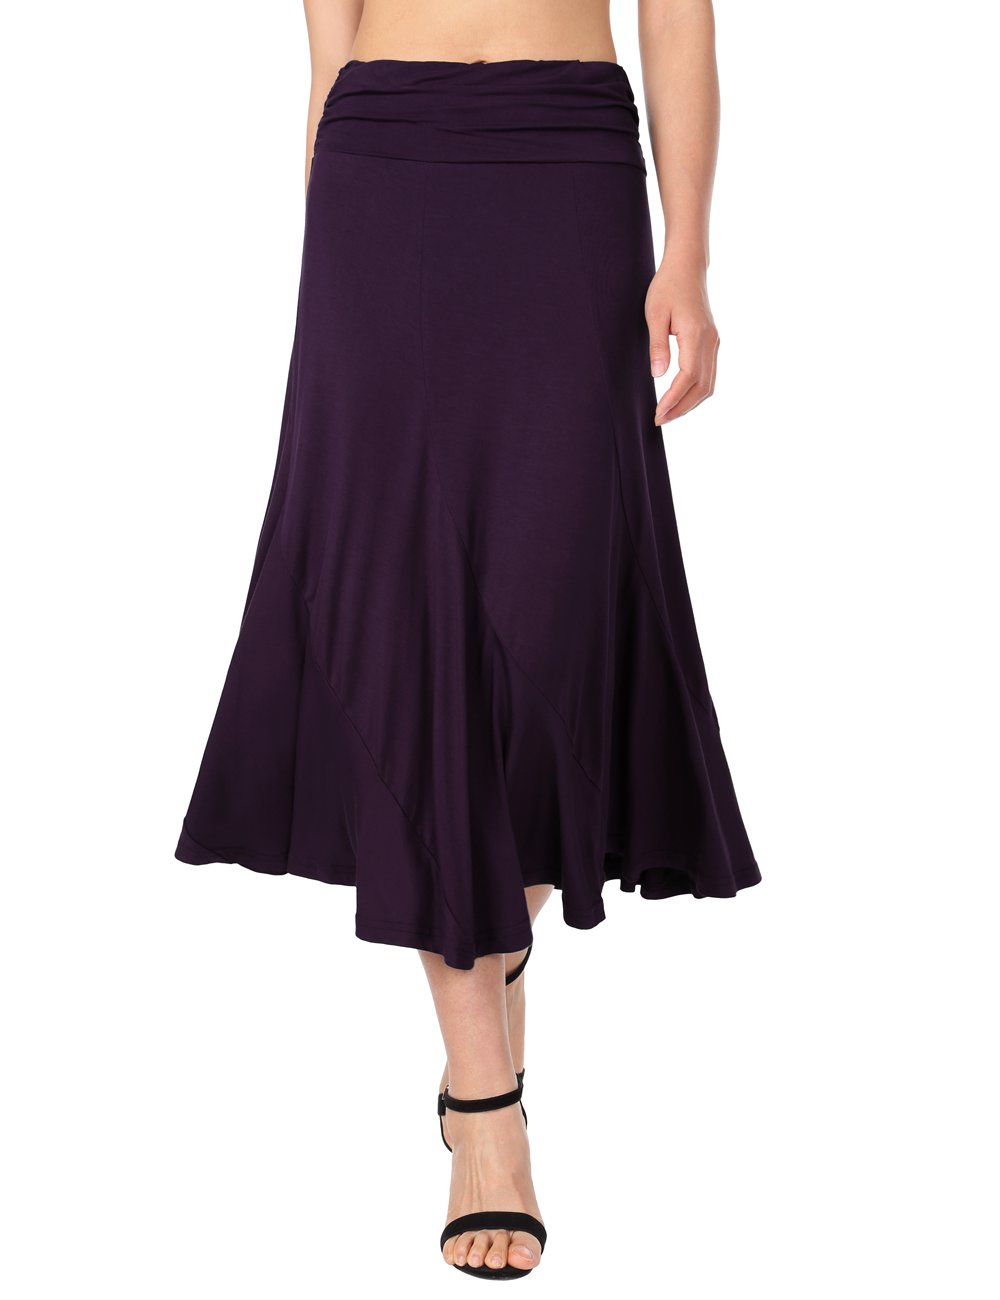 DJT FASHION Pleated Skirt, Women's Vintage High Waist Shirring A-Line Long Midi Skirt XX-Large Dark Purple